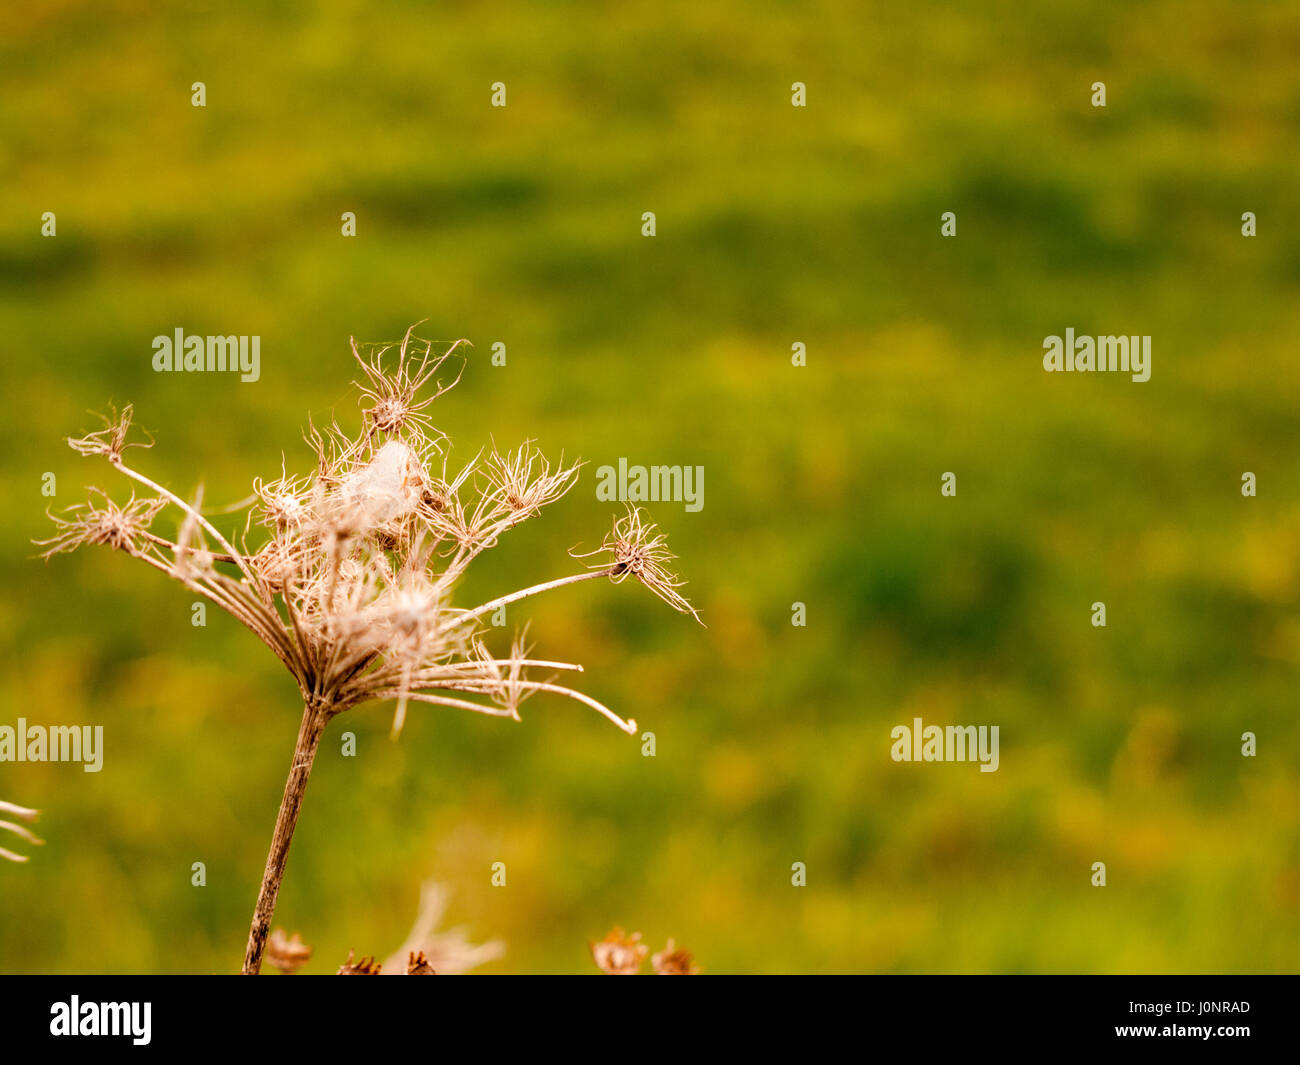 Spindly Dead Plant With Green Blurred Background Up Close Macro, Wisp and breezy blowing in the wind brown dead - Stock Image